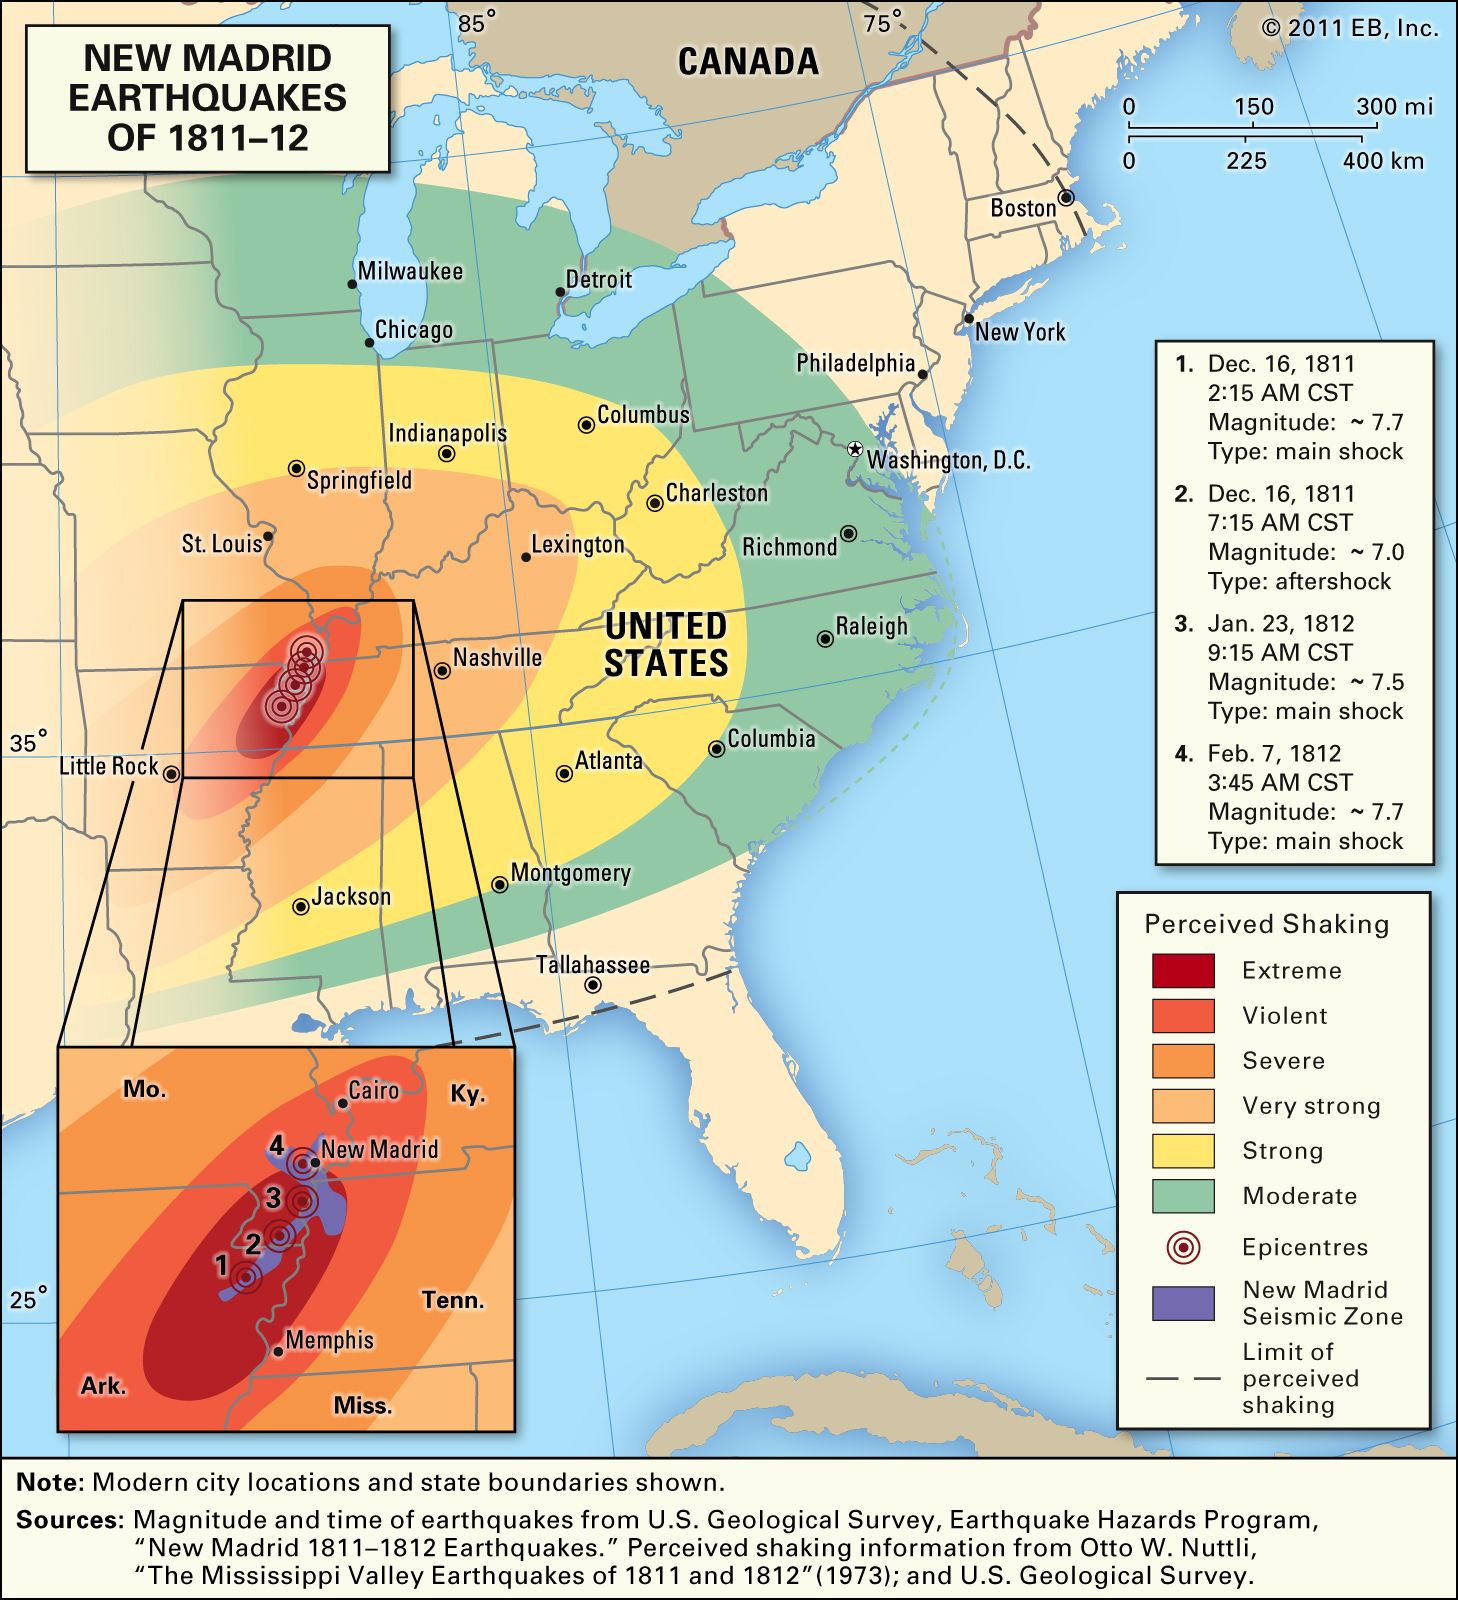 New Madrid earthquake Map of the New Madrid earthquakes of 181112